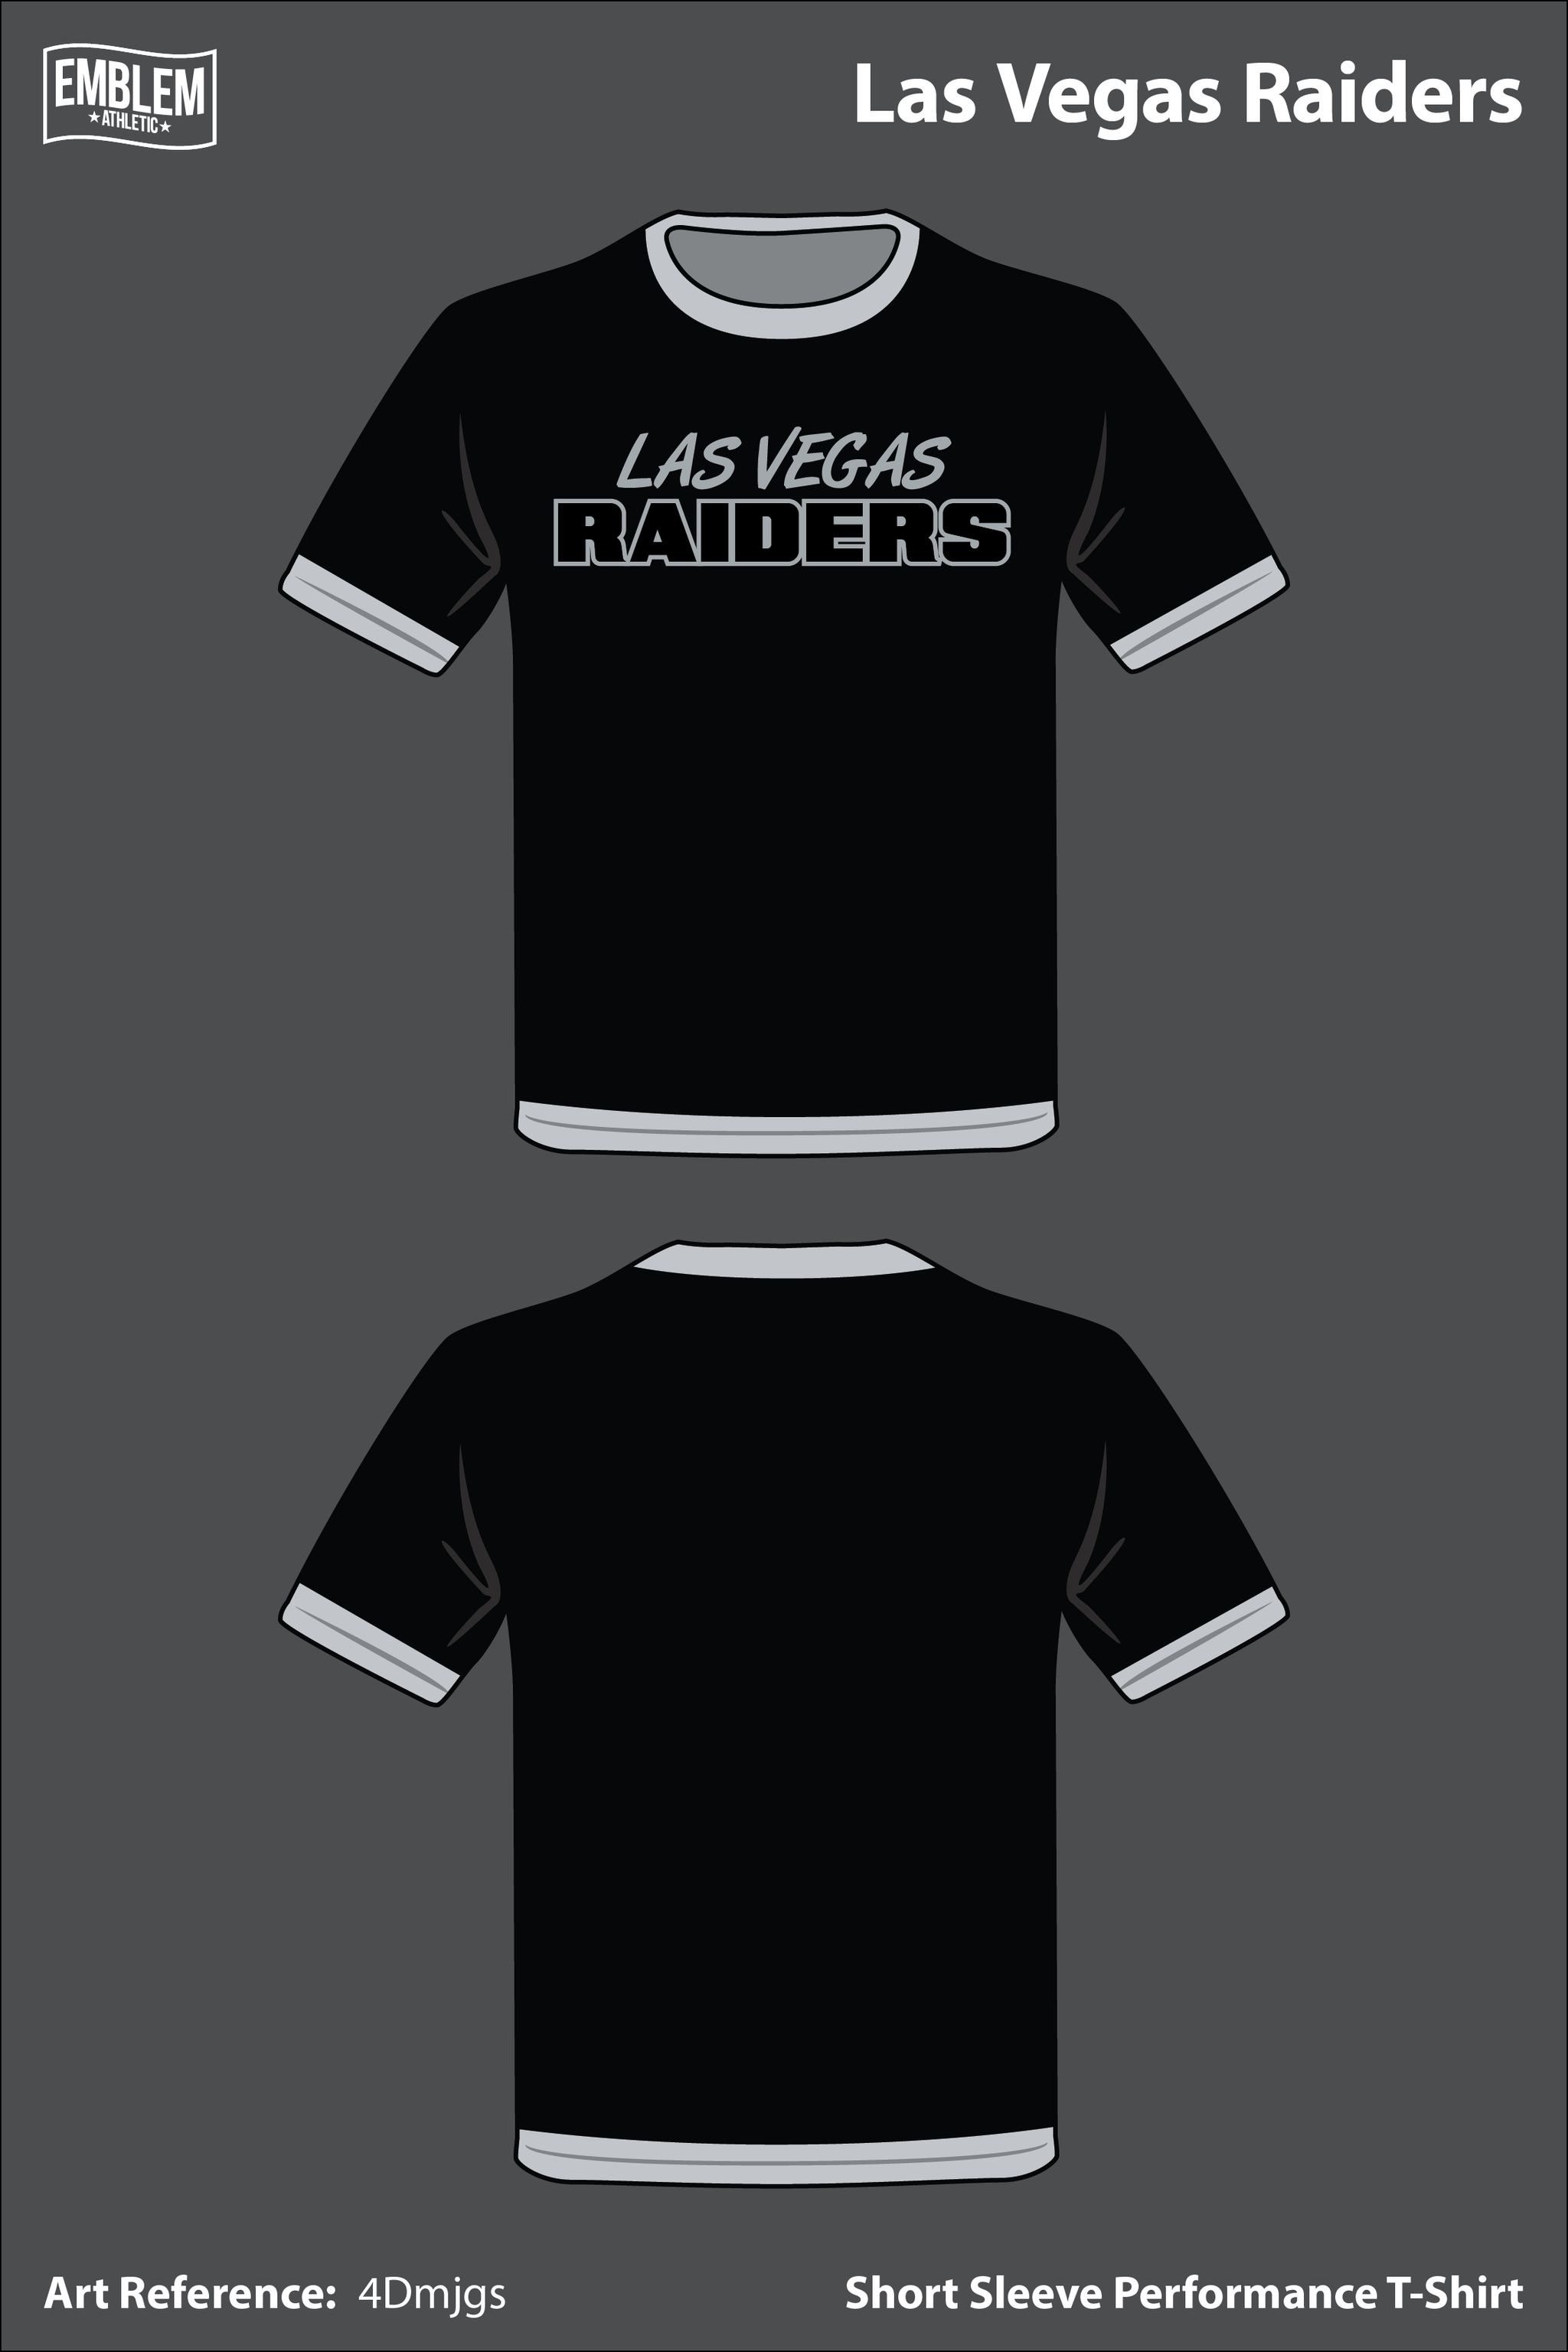 1908cd3f9c7 Las Vegas Raiders Men s Short-Sleeve Performance Shirt - 4Dmjgs ...